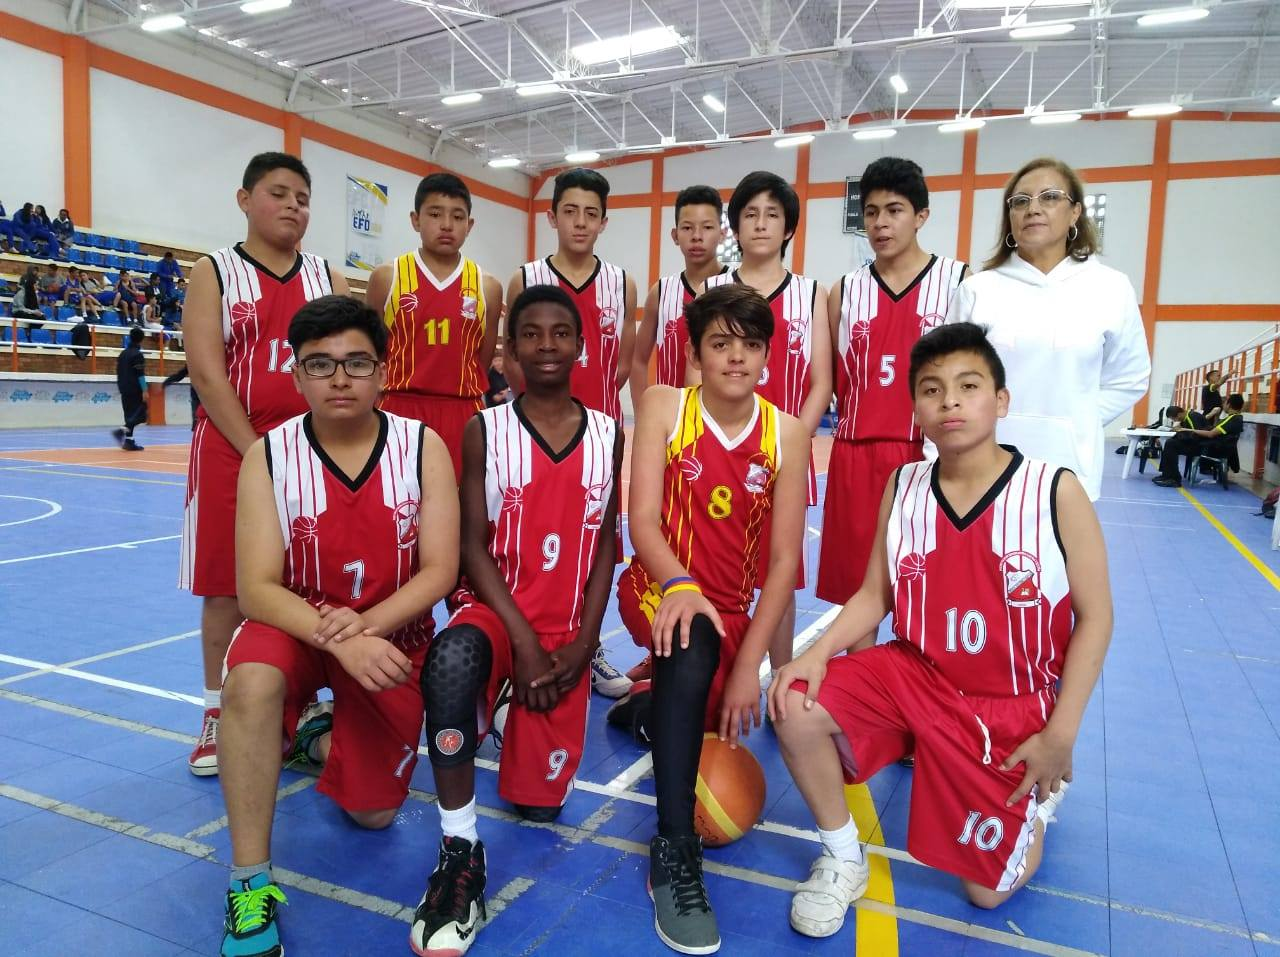 LUARA VICUÑA CAMPEON BALONCESTO SUPERATE